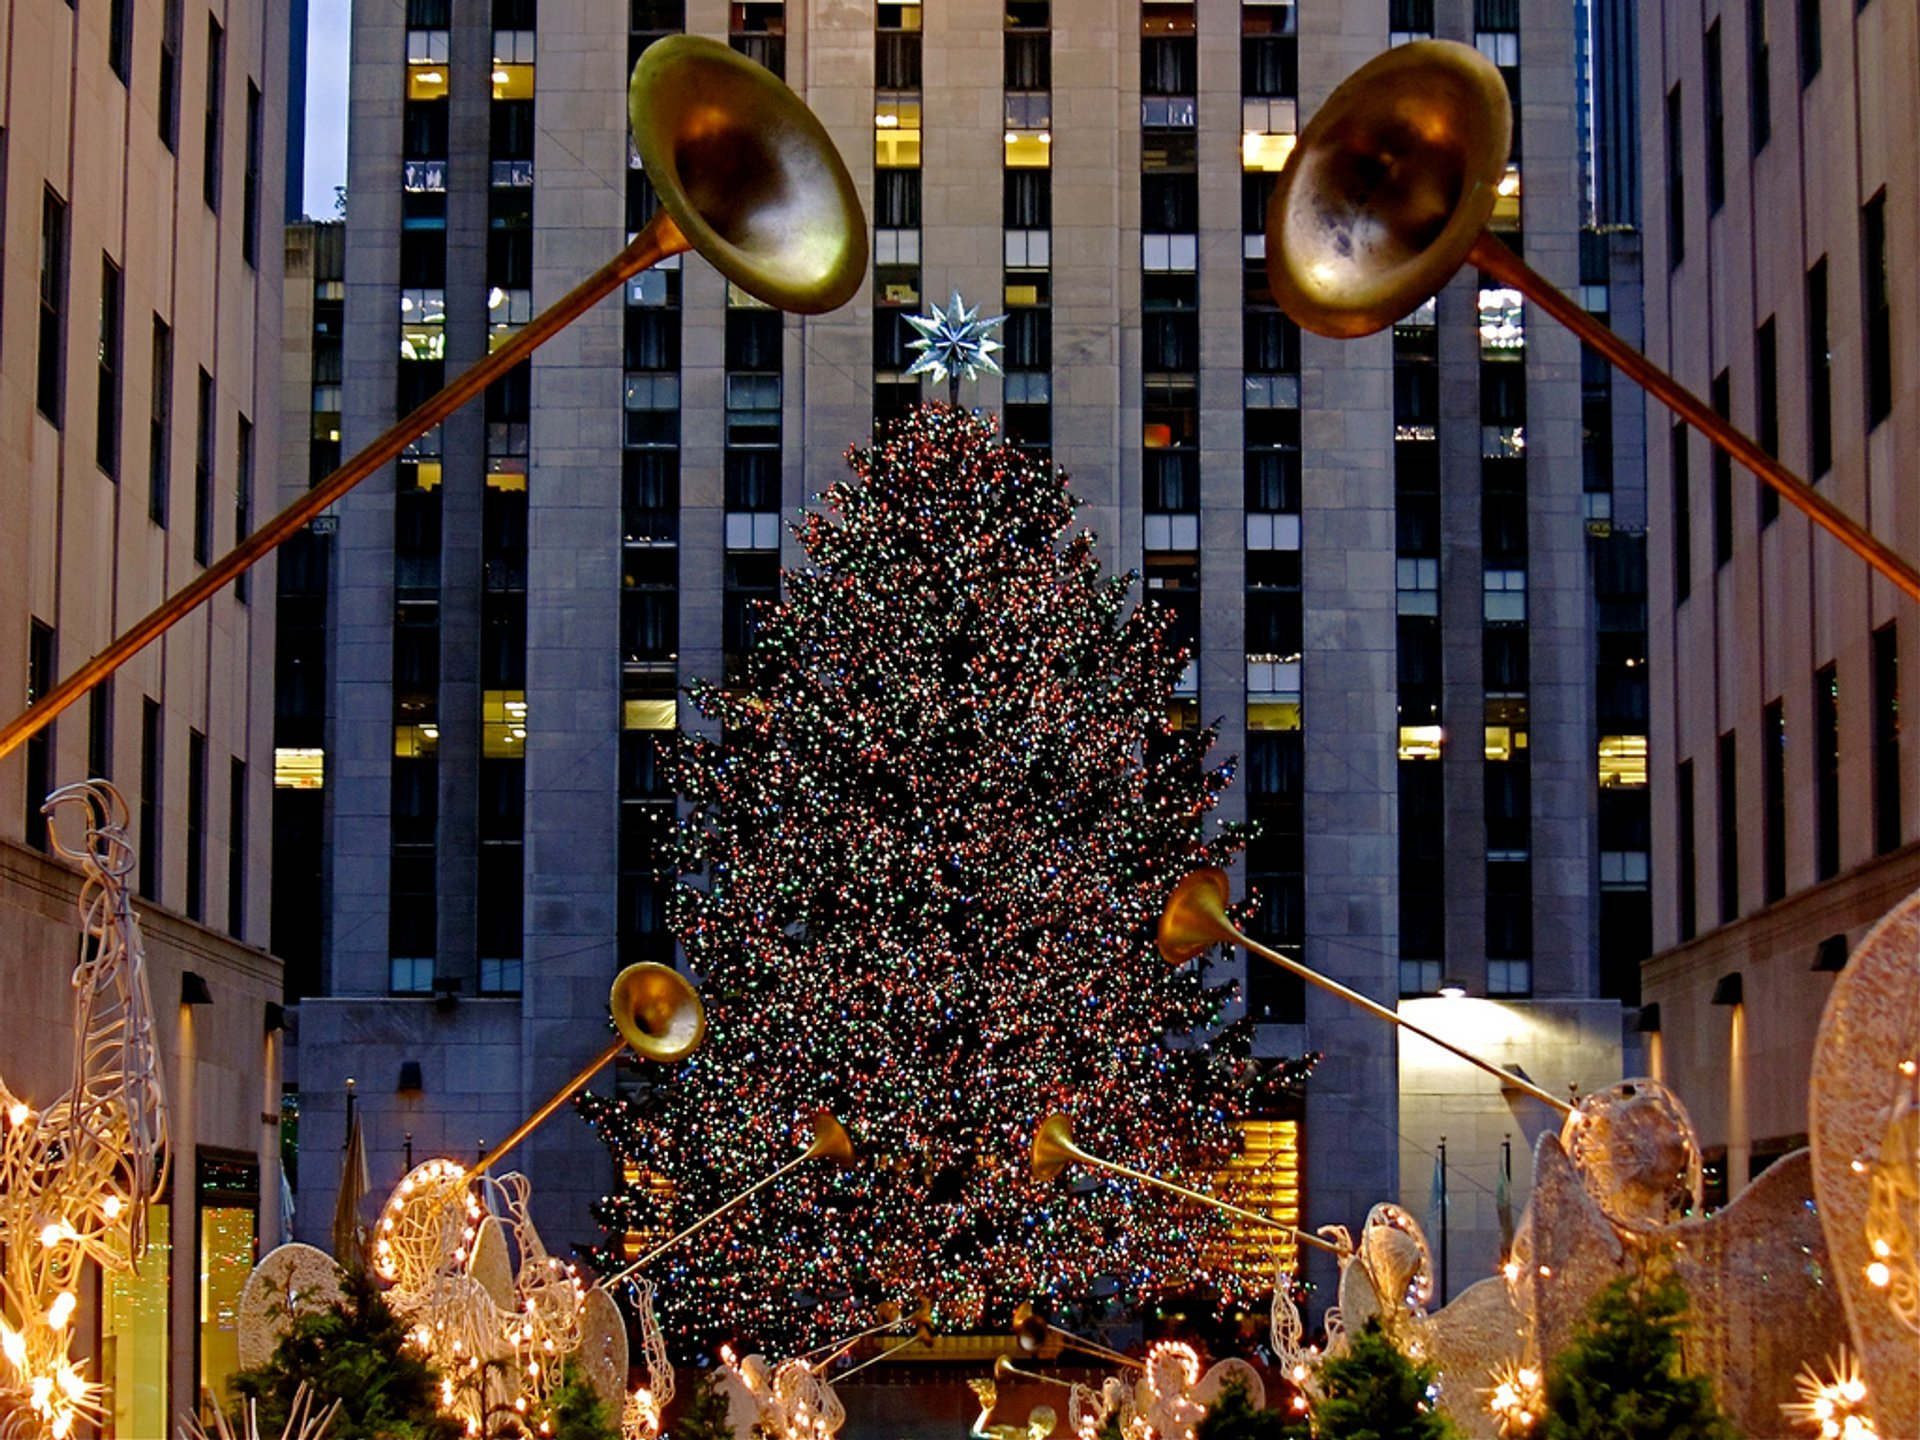 Rockefeller Center Christmas Tree in New York 2019 - Best Time